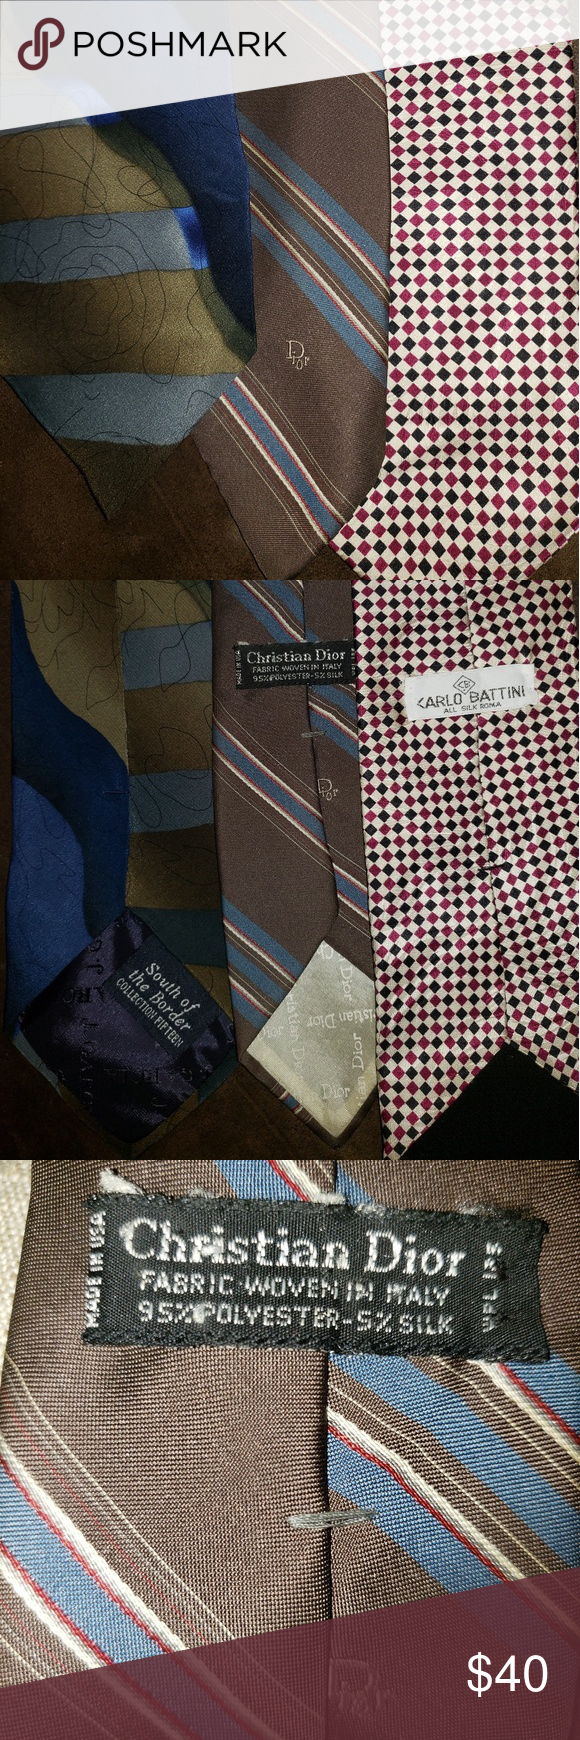 I just added this listing on Poshmark: Christian Dior Necktie.